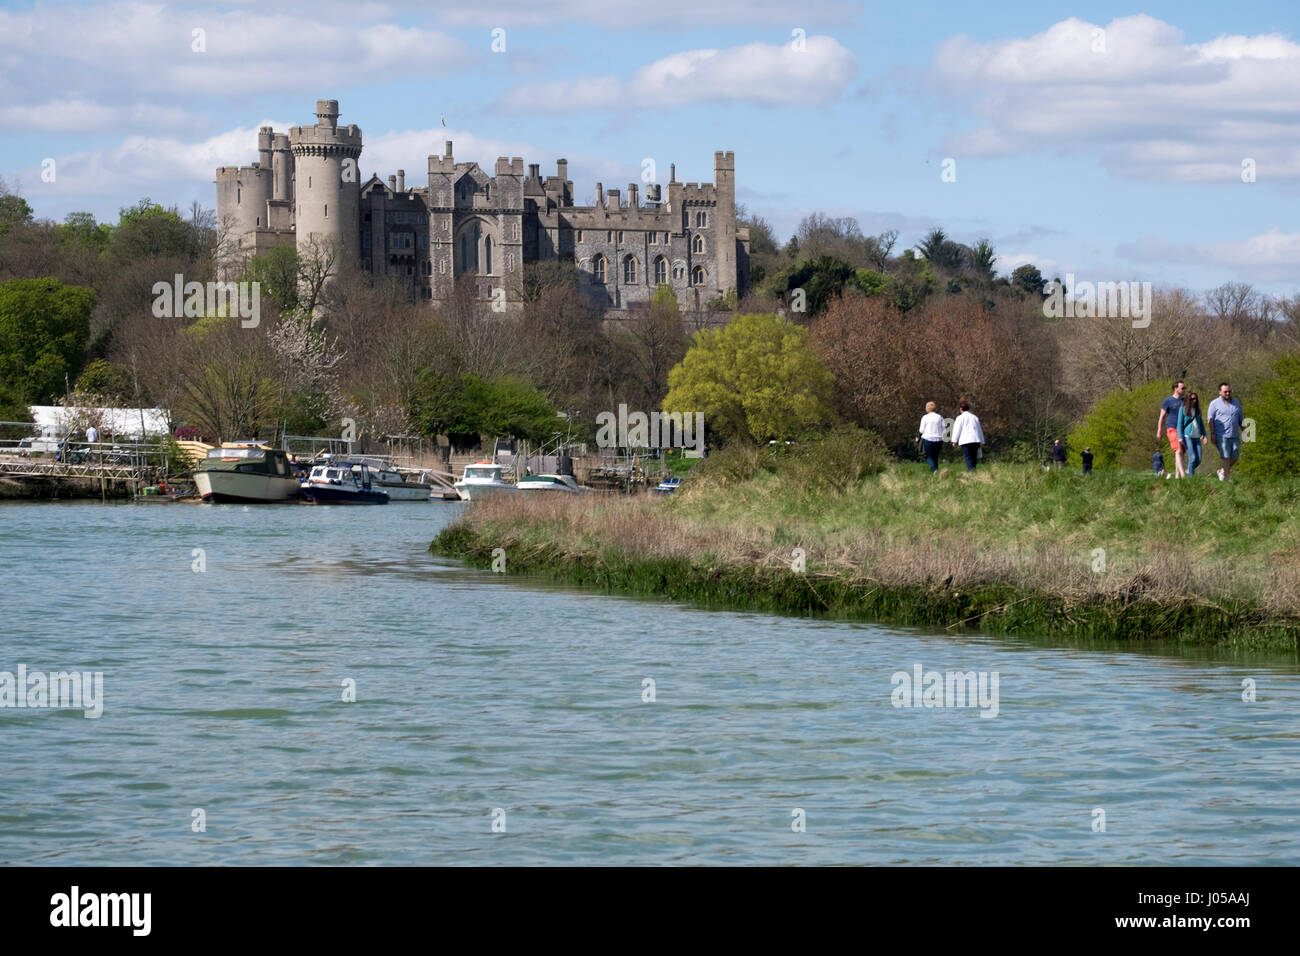 Arundel, UK. 10th April 2017. UK Weather. With tempreatures reaching the mid to high teens, the boats moored on - Stock Image